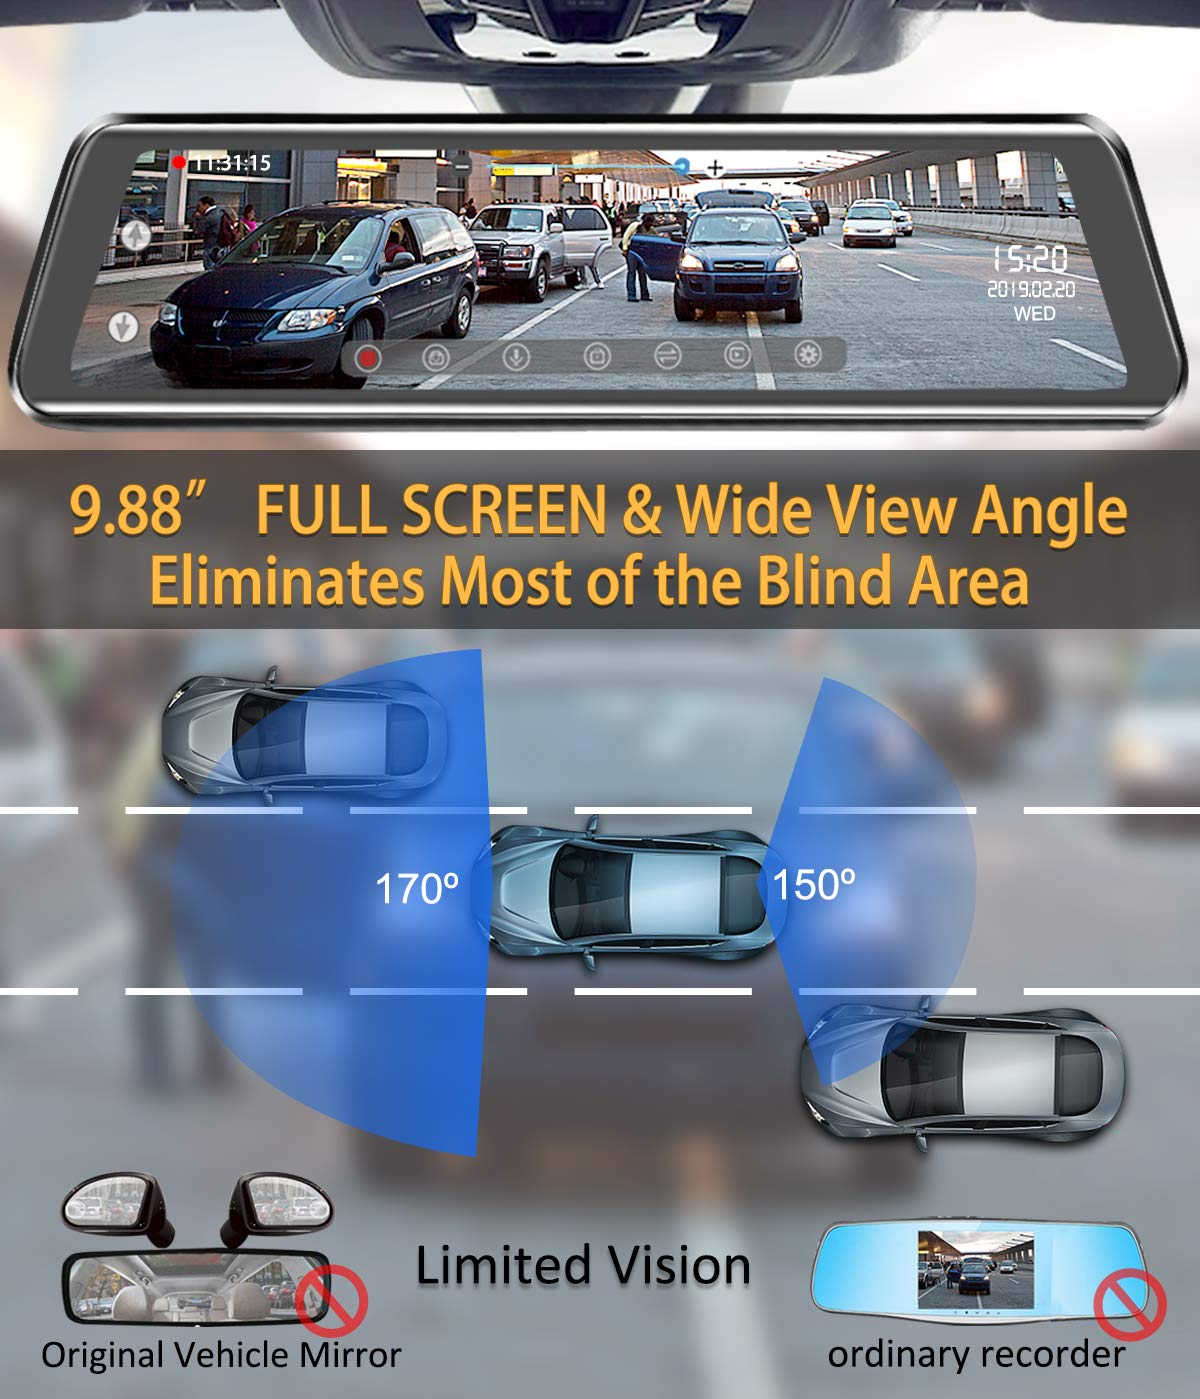 Mirror Dash Cam 9.88 inch Full Touch Screen Car Backup Camera Dual Recording HD Front 1080P 170/° Wide Angle 1080P Rear View Camera 150/° URVOLAX Night Vision,24-Hour Parking,GPS,Free SD Card